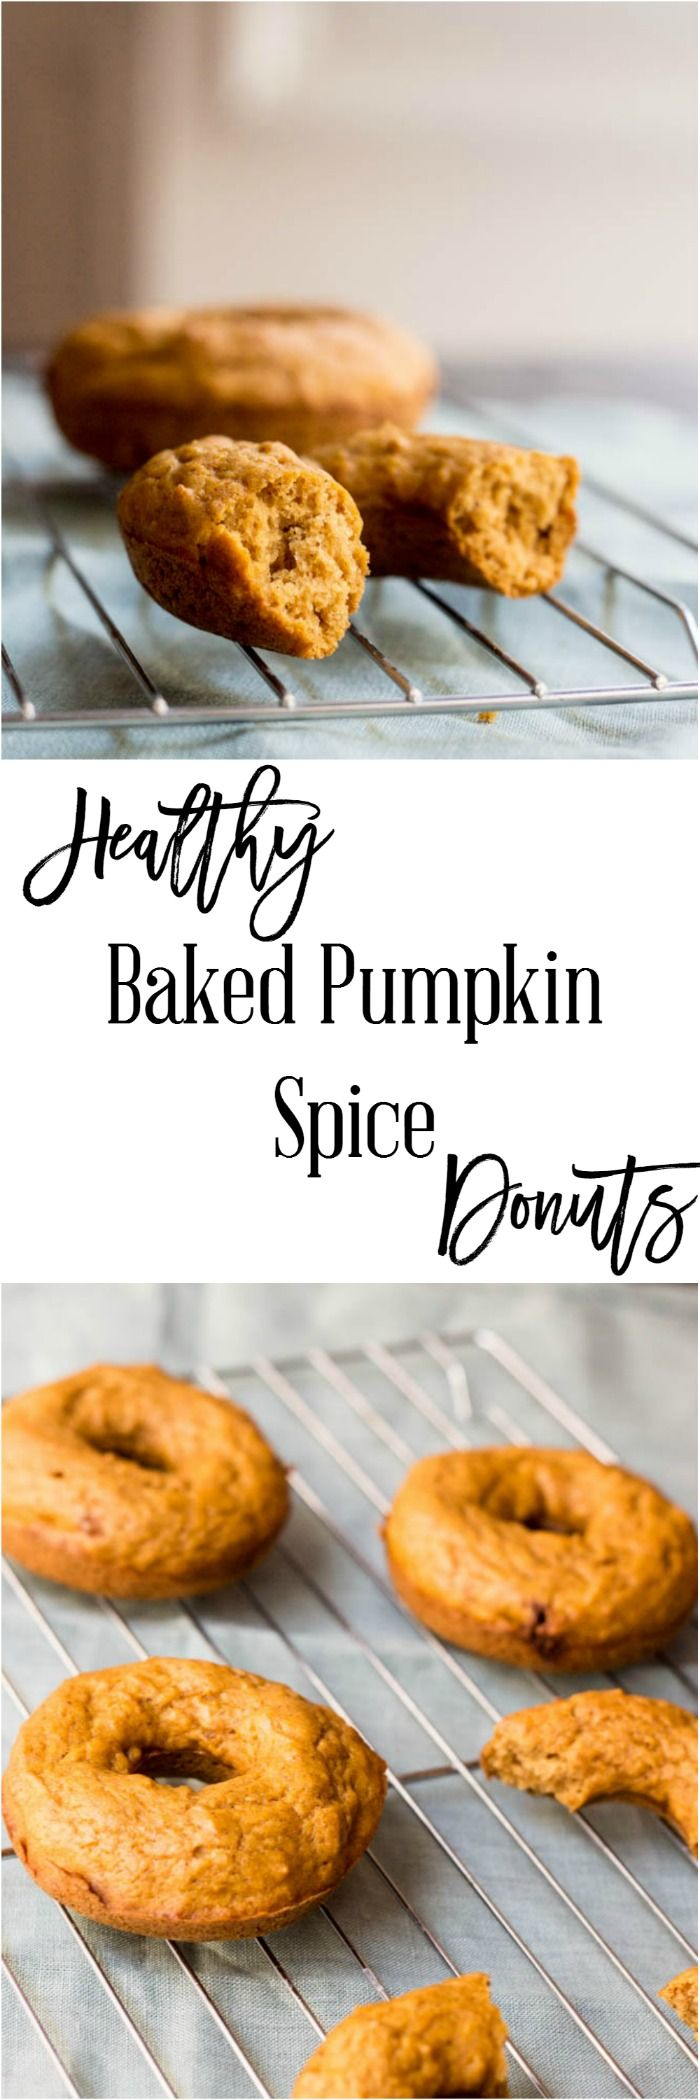 Healthy Baked Pumpkin Spice Donuts - this delicious dessert recipe doesn't have to kill the weight you are losing. It's only 5 SmartPoints per donut on Weight Watchers and you would never know these were a healthy alternative to your traditional donut.